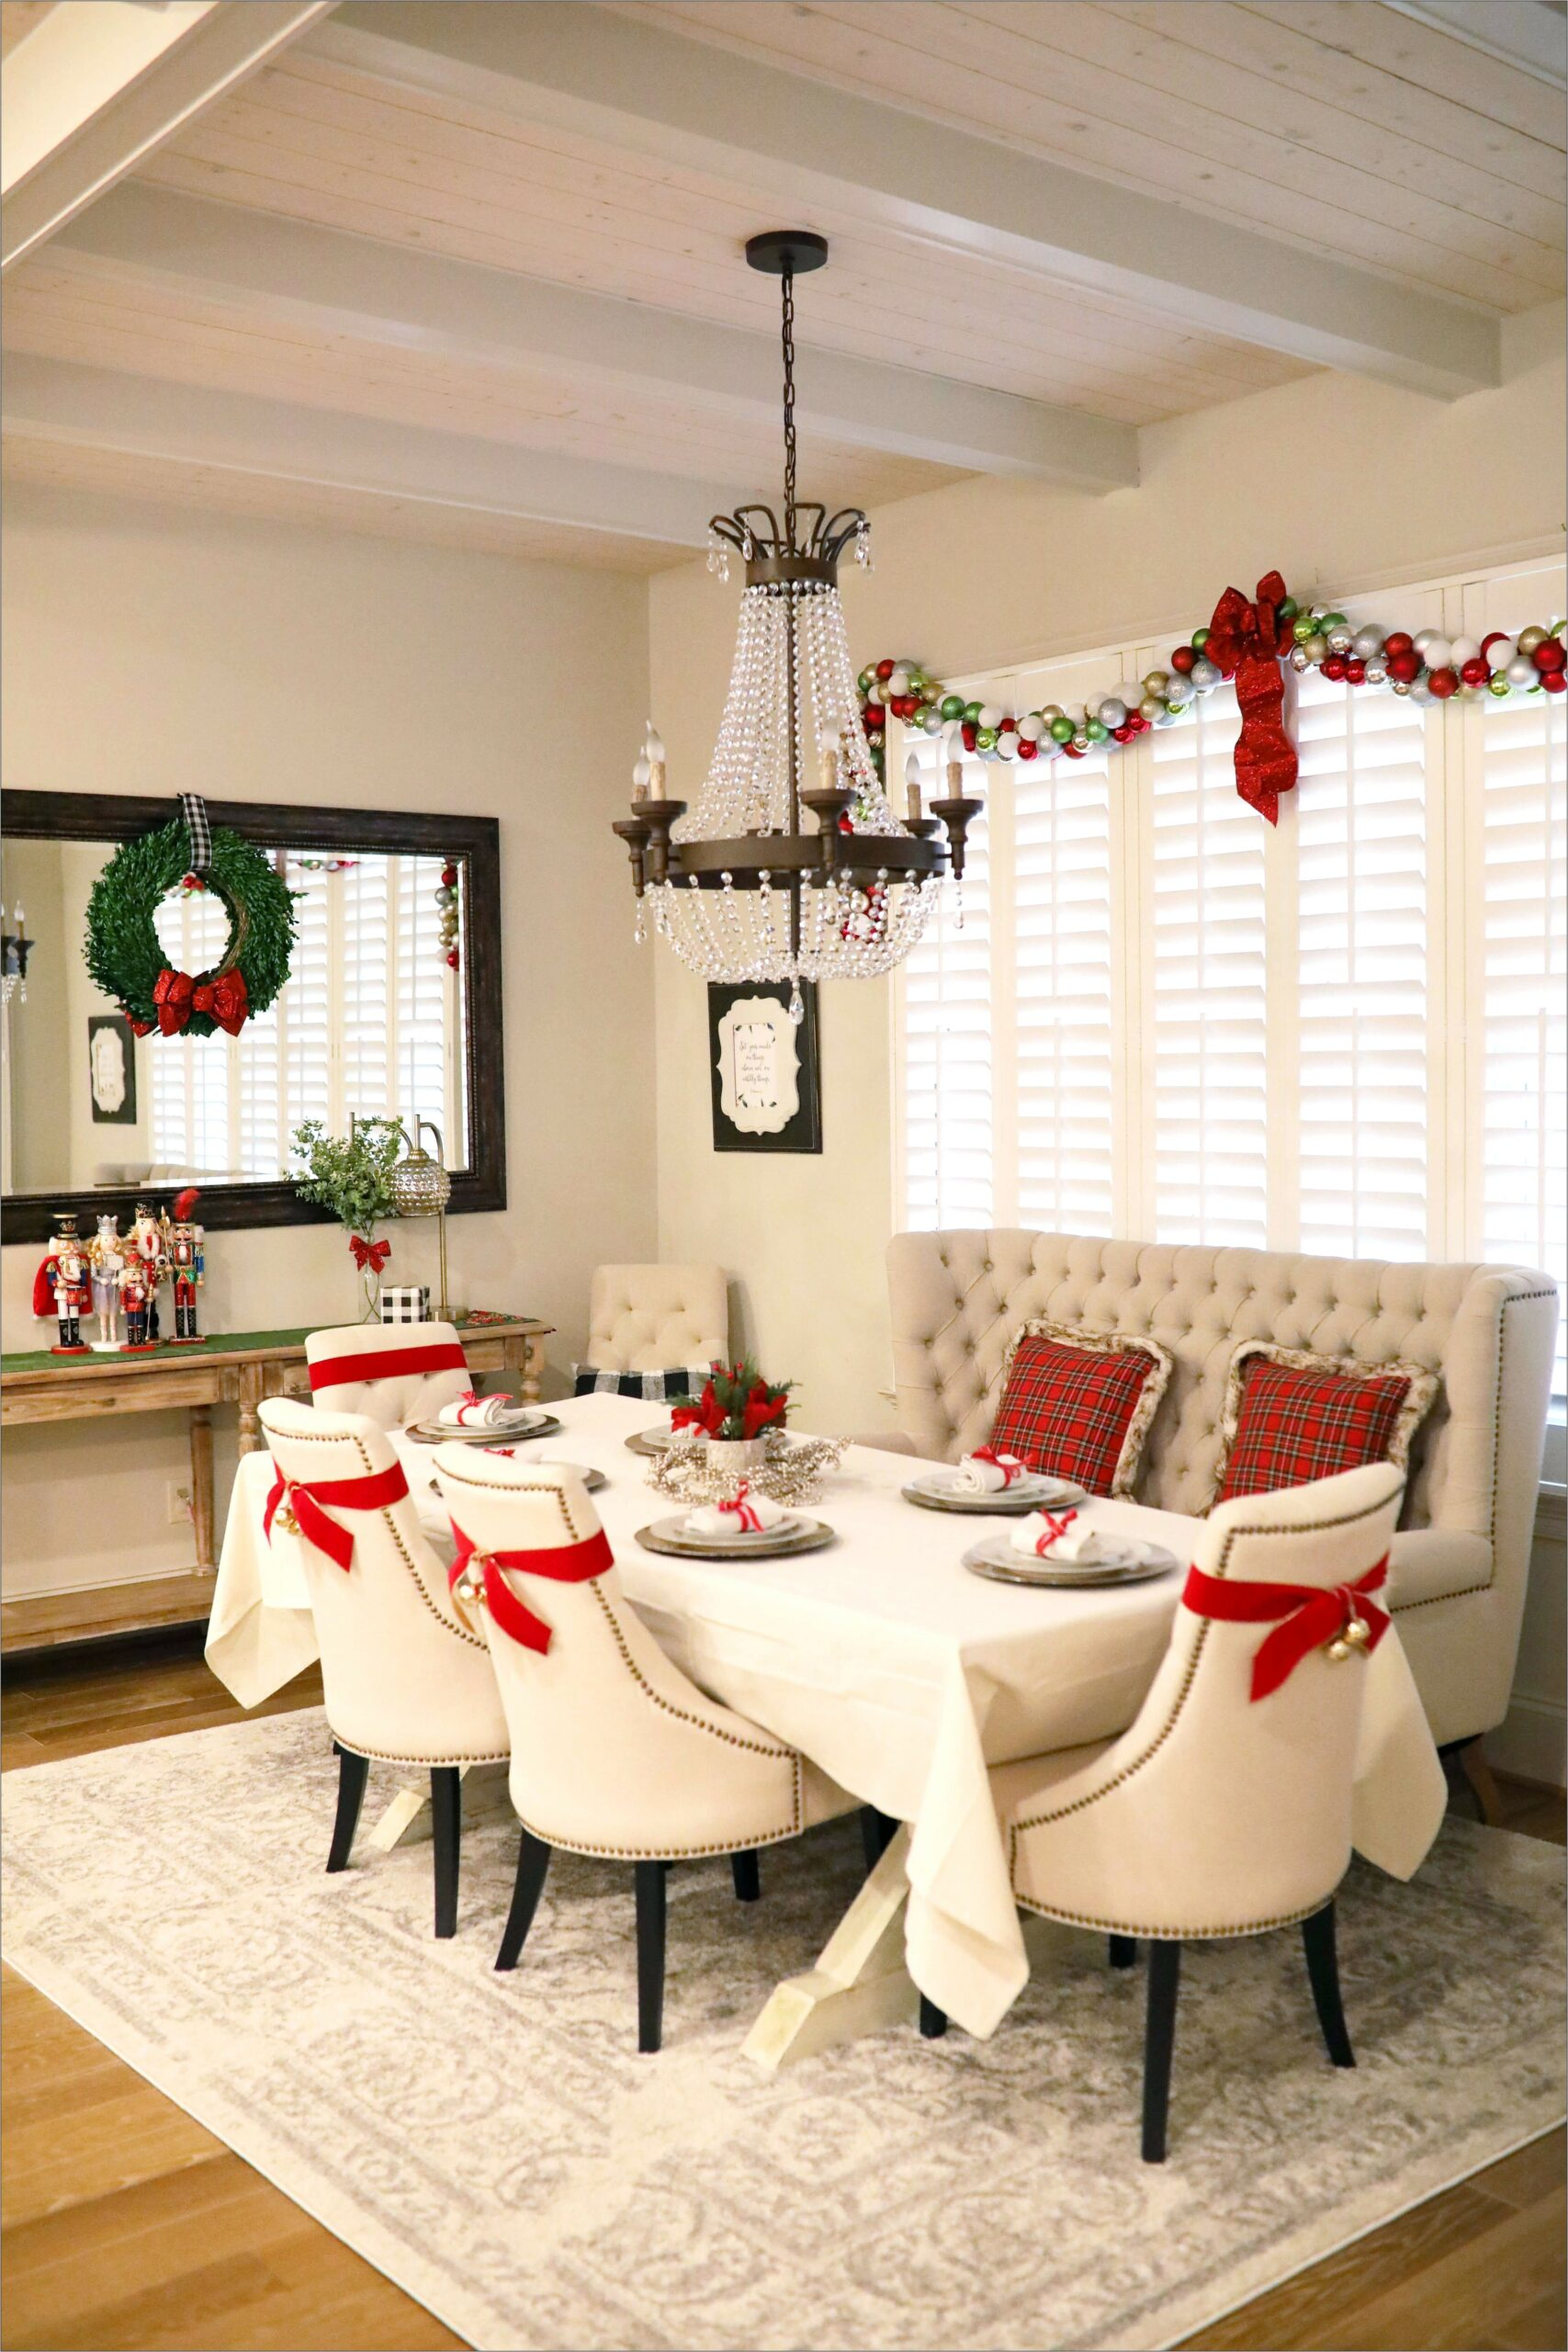 Decor For A Green Dining Room